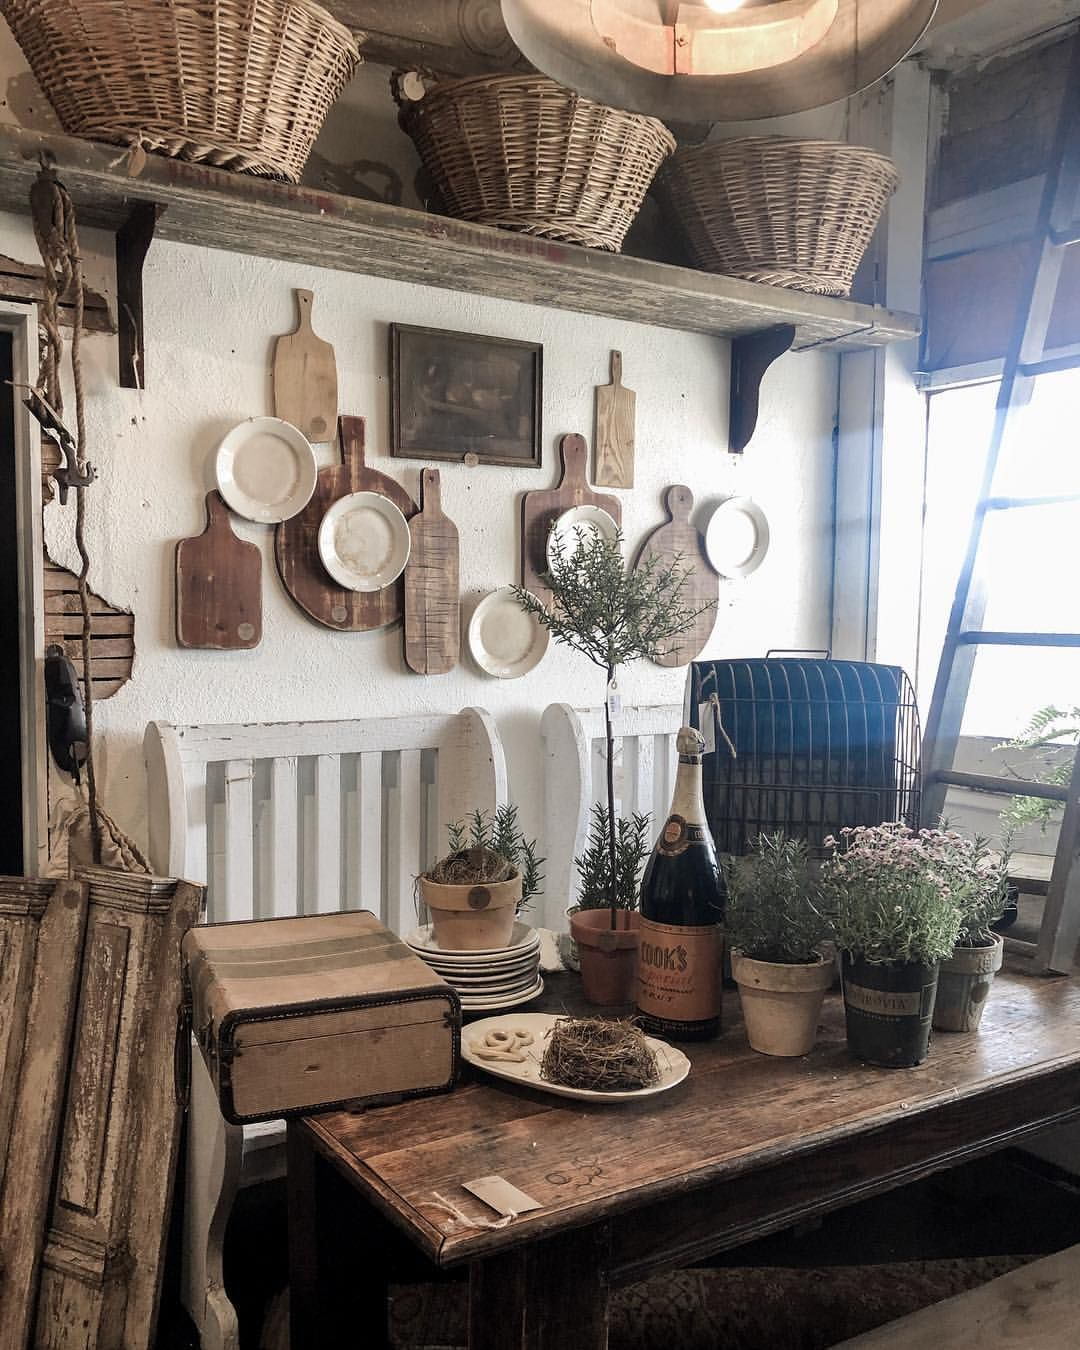 Is Farmhouse Decor Out: Spending The Morning Out And About With My Husband. We